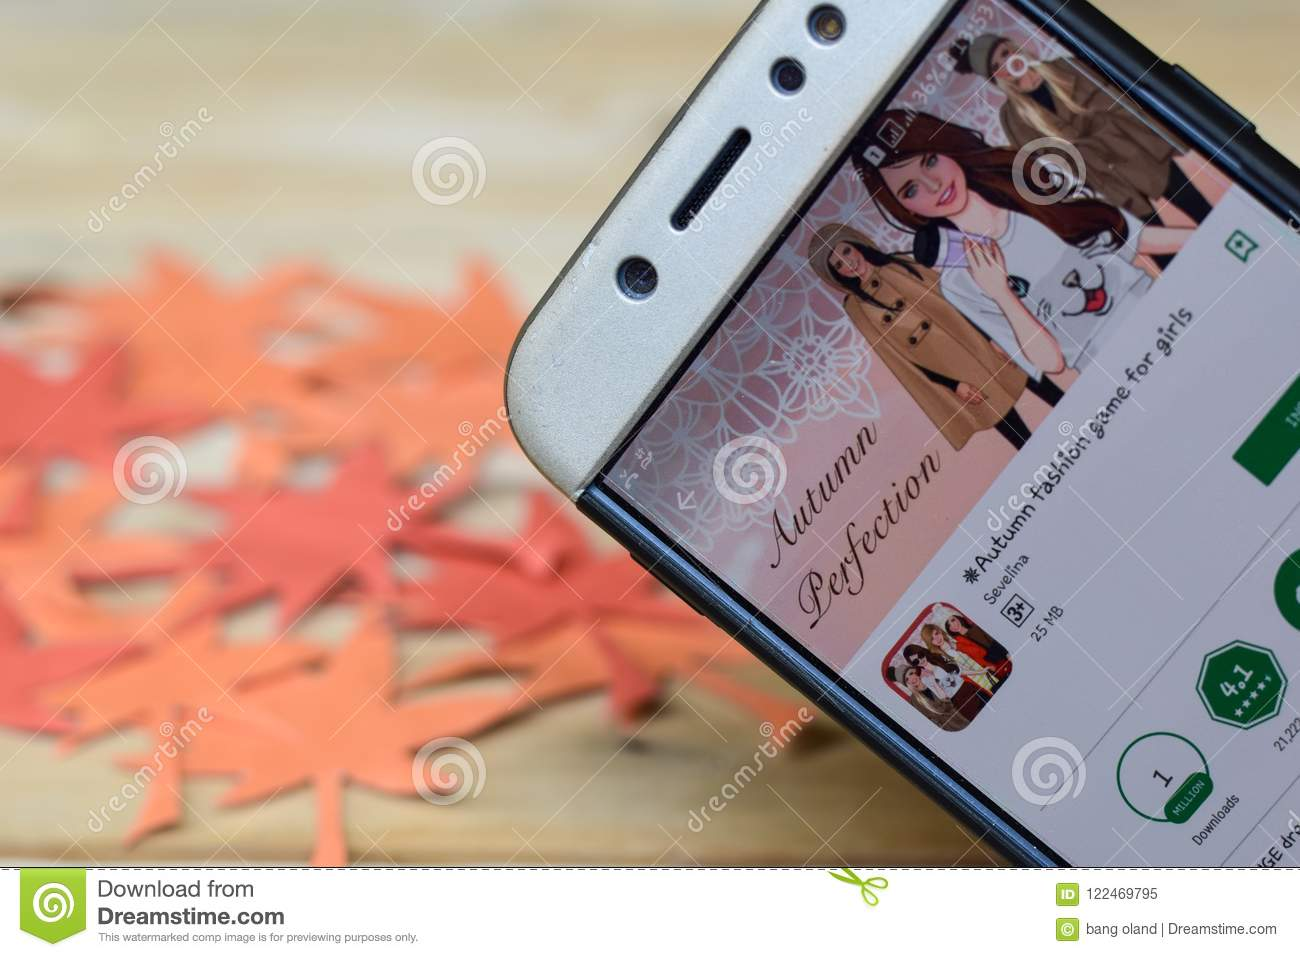 Autumn Fashion Game For Girls App On Smartphone Screen